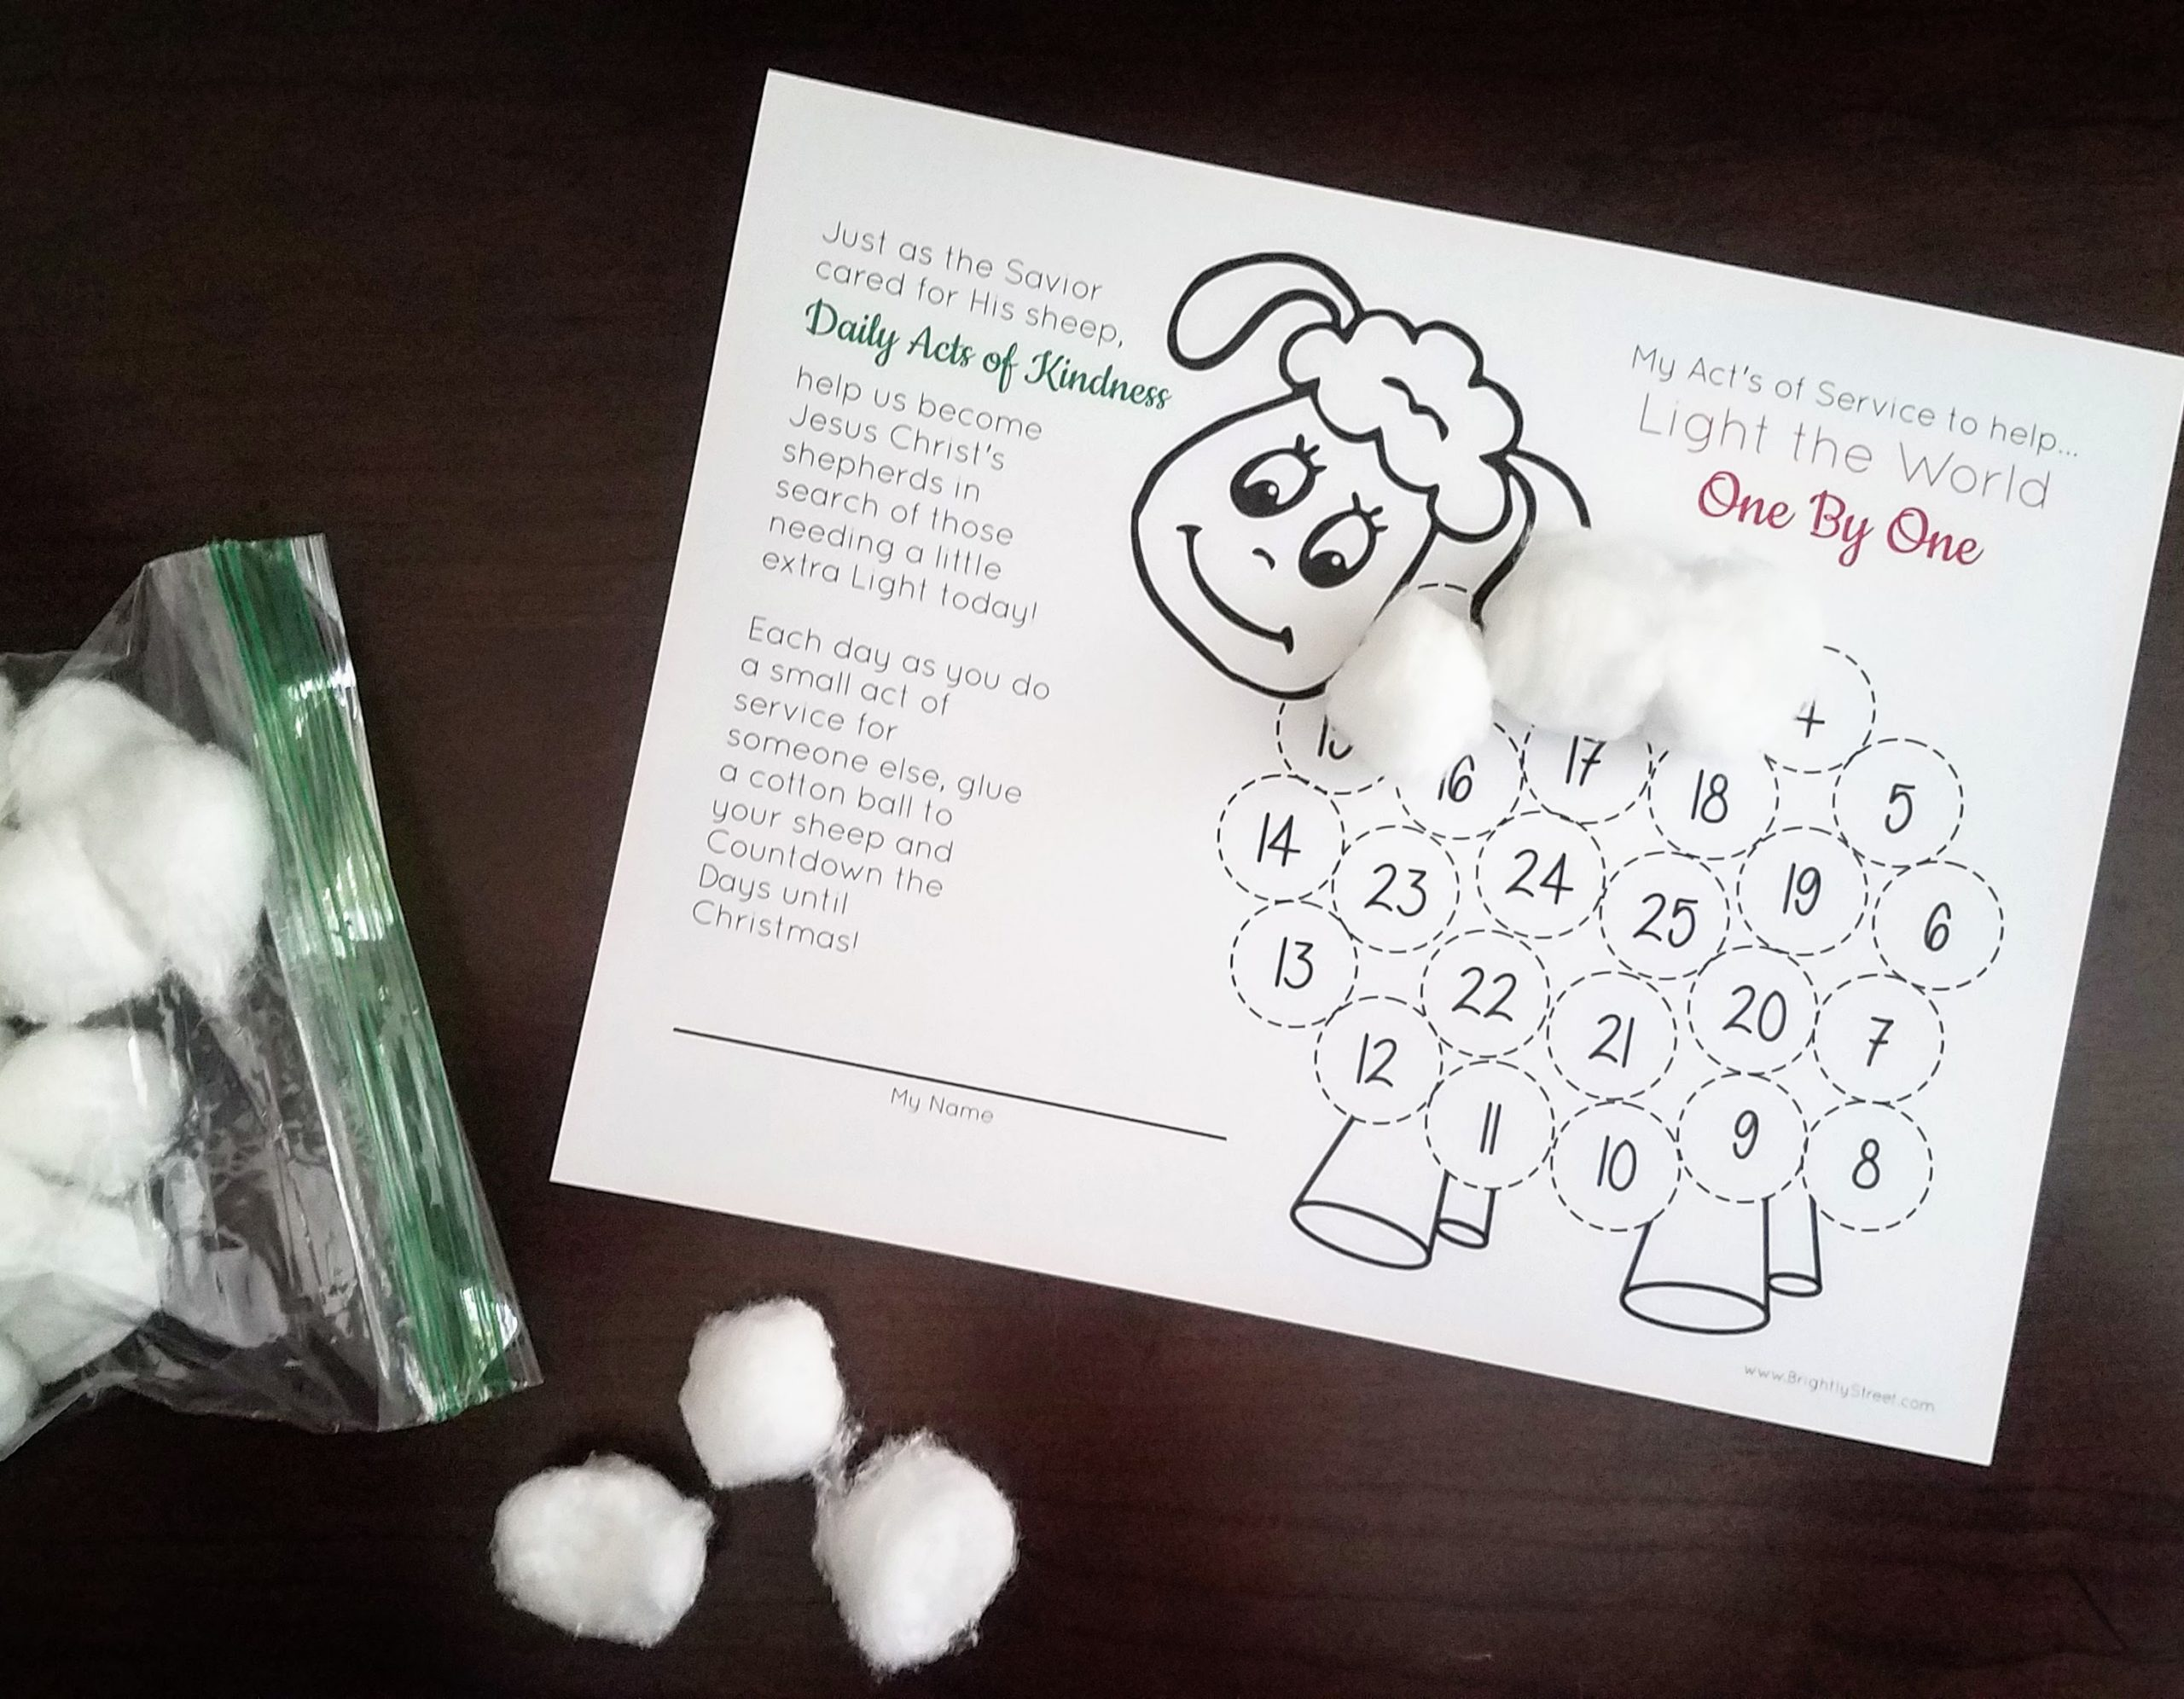 Light the World One By One Kid-Friendly Service Printable Idea